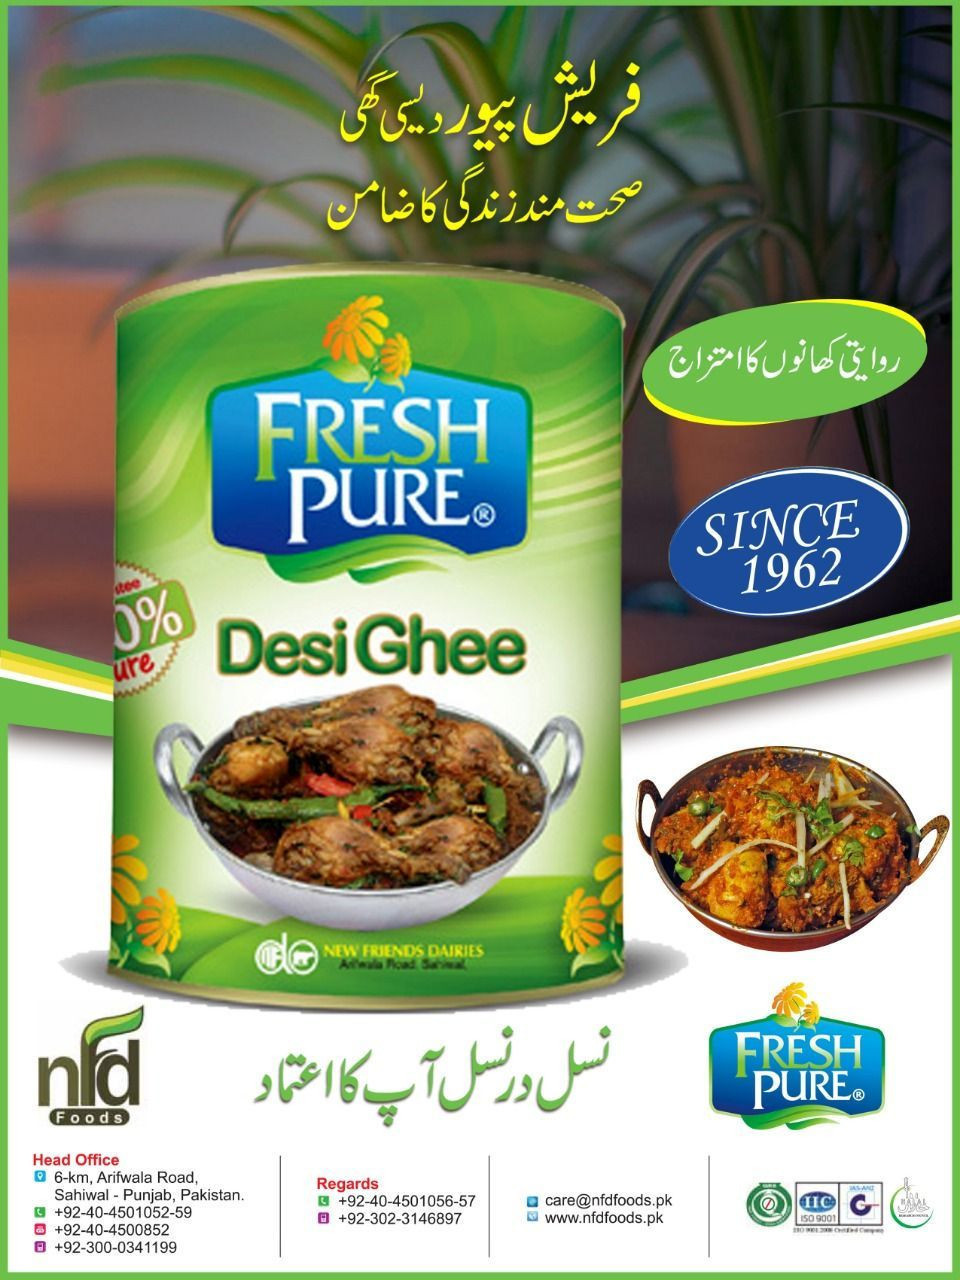 FRESH PURE DESI GHEE